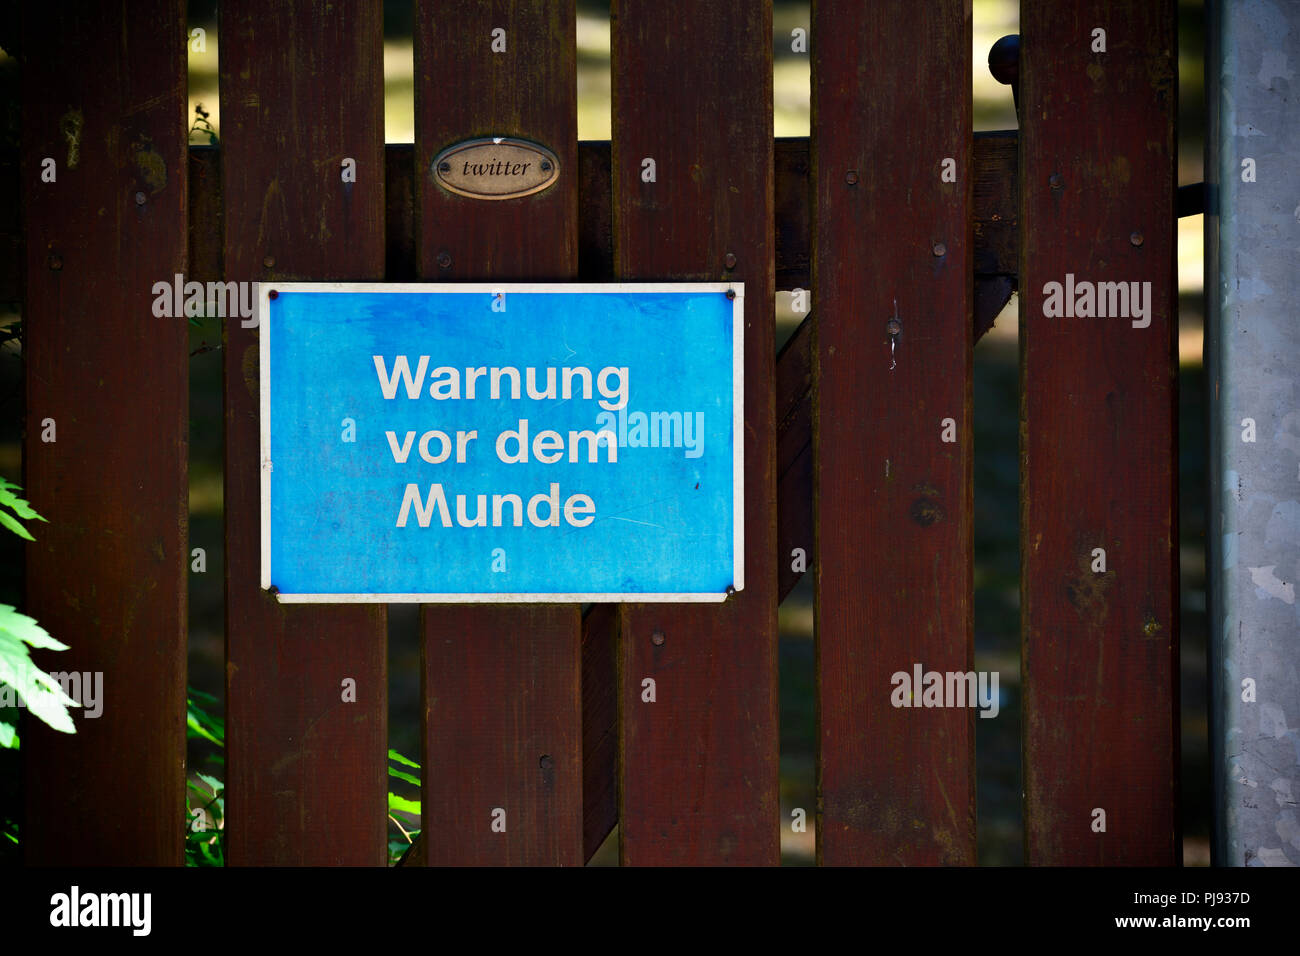 Warning before the mouth and Twitter sign, symbolic photo Hate speech, photomontage, Warnung vor dem Munde und Twitter-Schild, Symbolfoto Hate Speech, - Stock Image